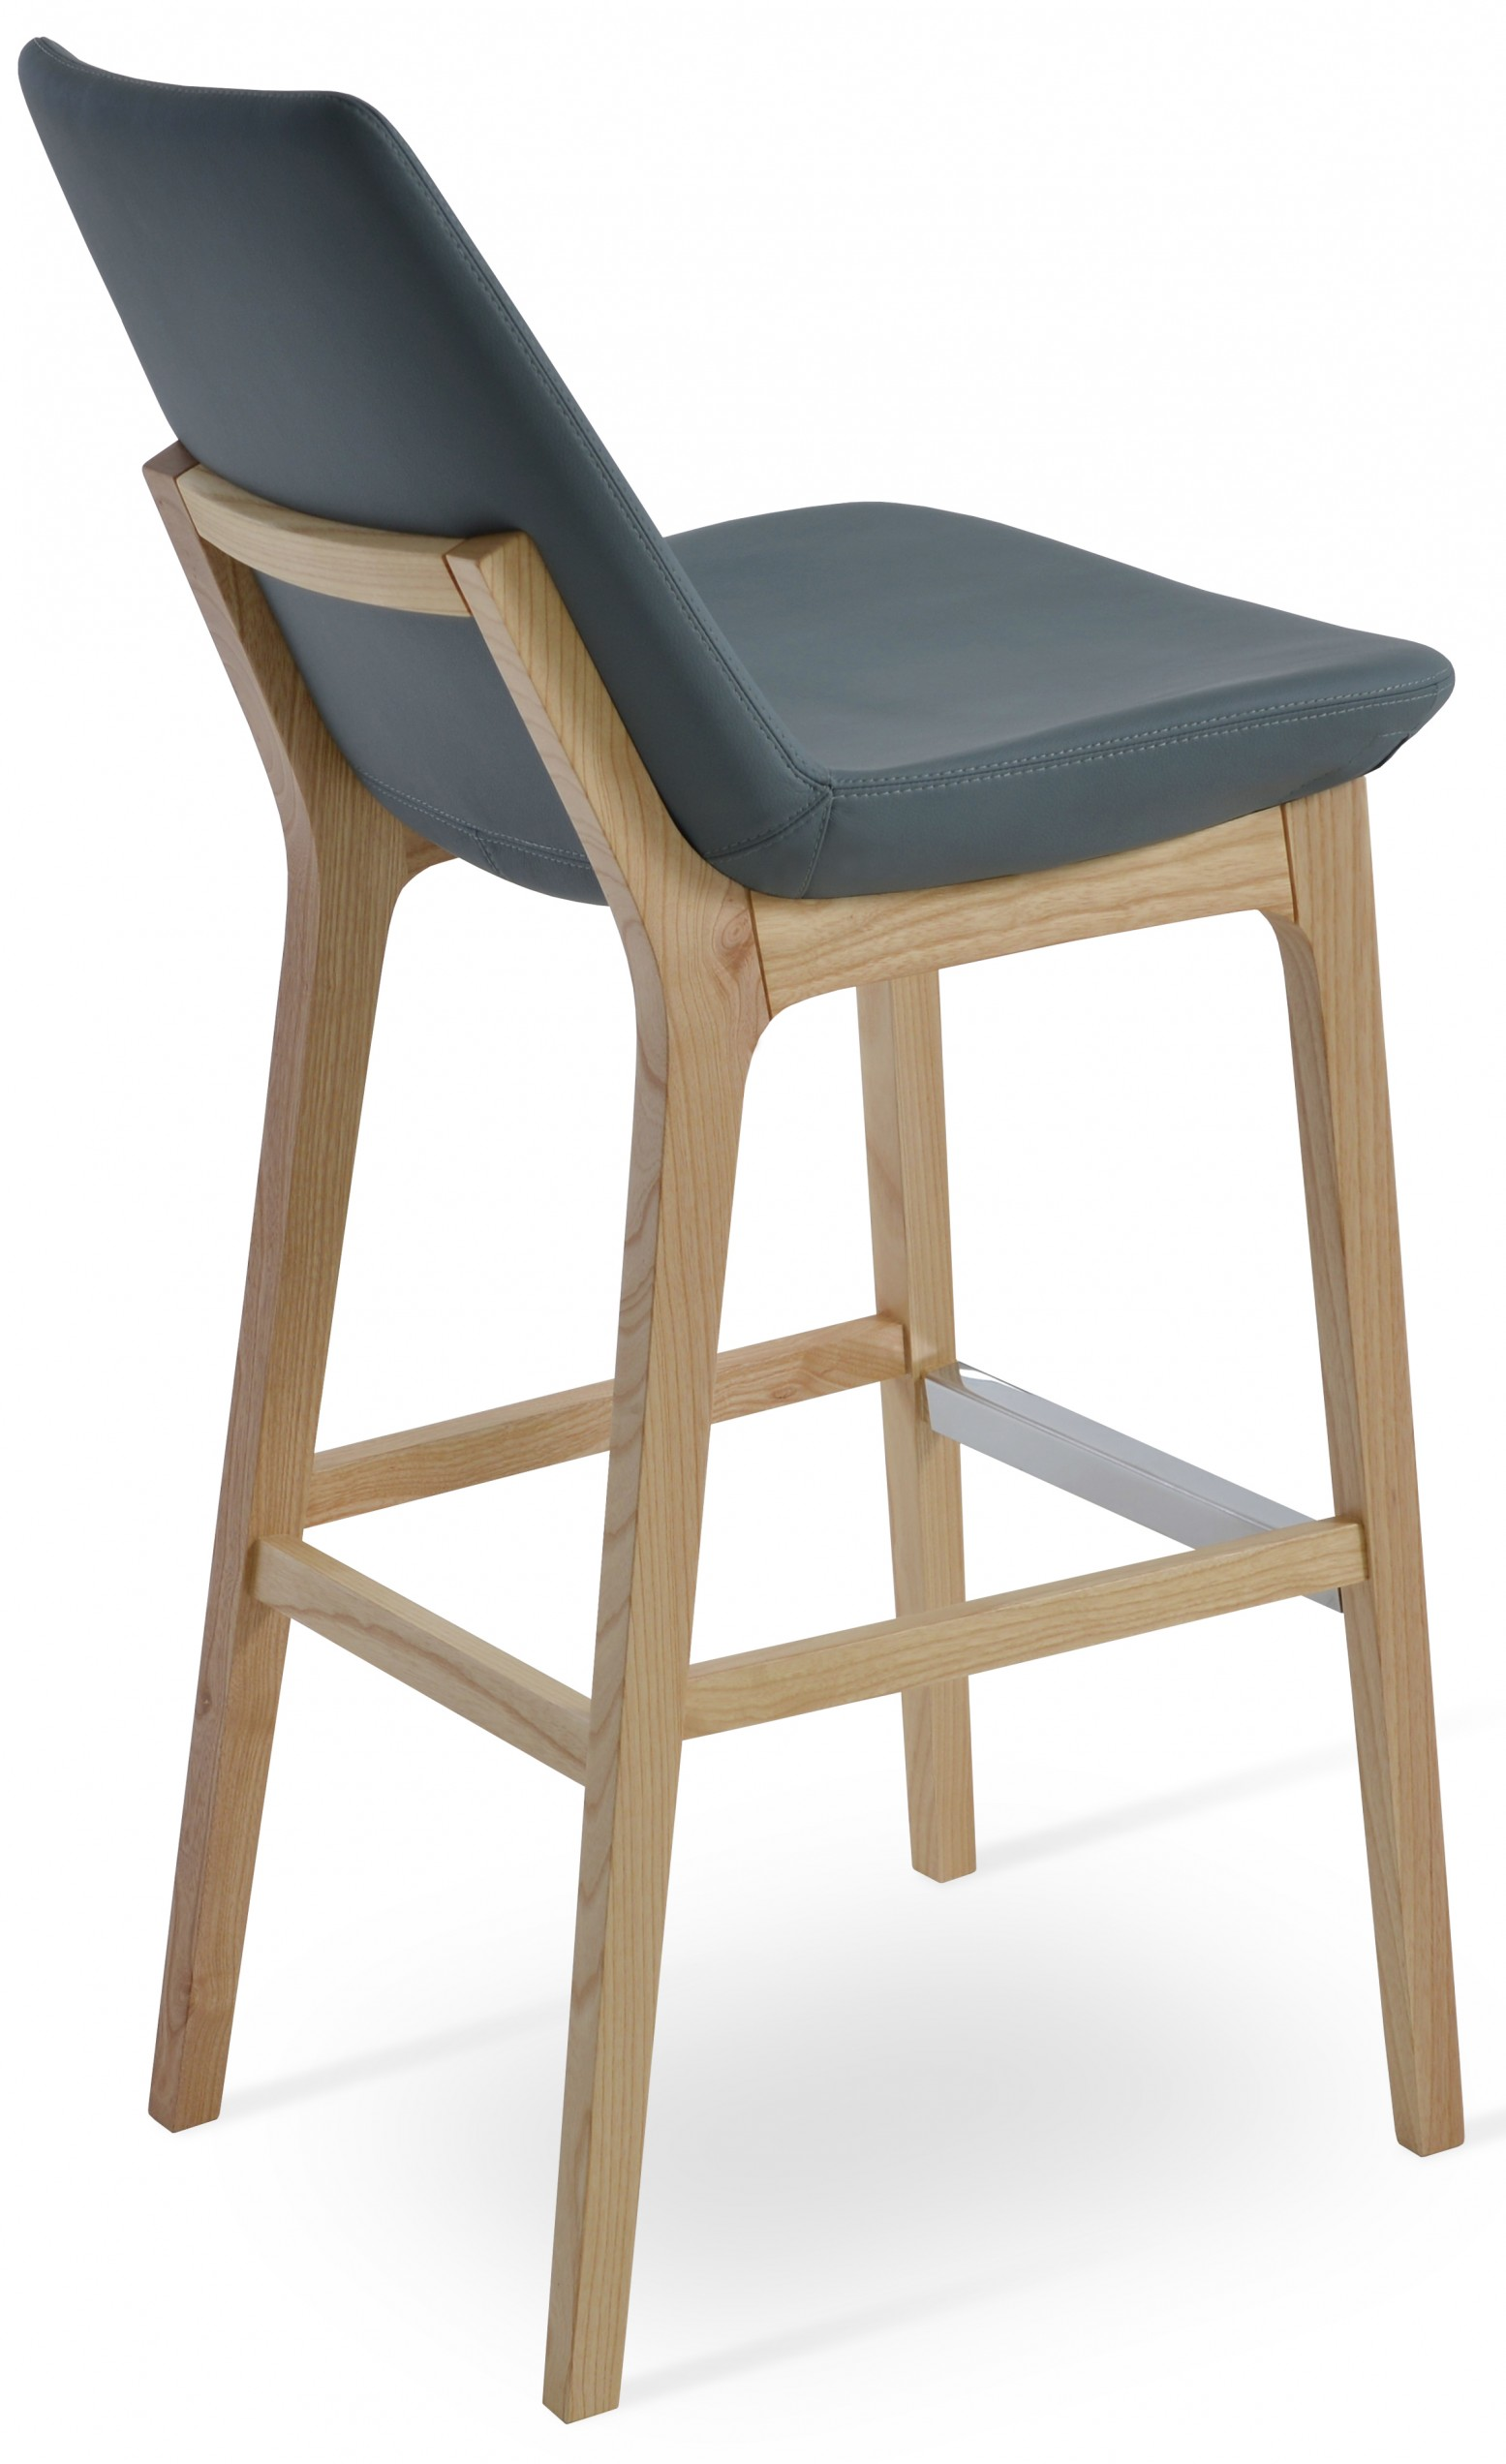 Phenomenal Eiffel Wood Counter Stool Natural Ash Smoke Grey Ppm Dailytribune Chair Design For Home Dailytribuneorg